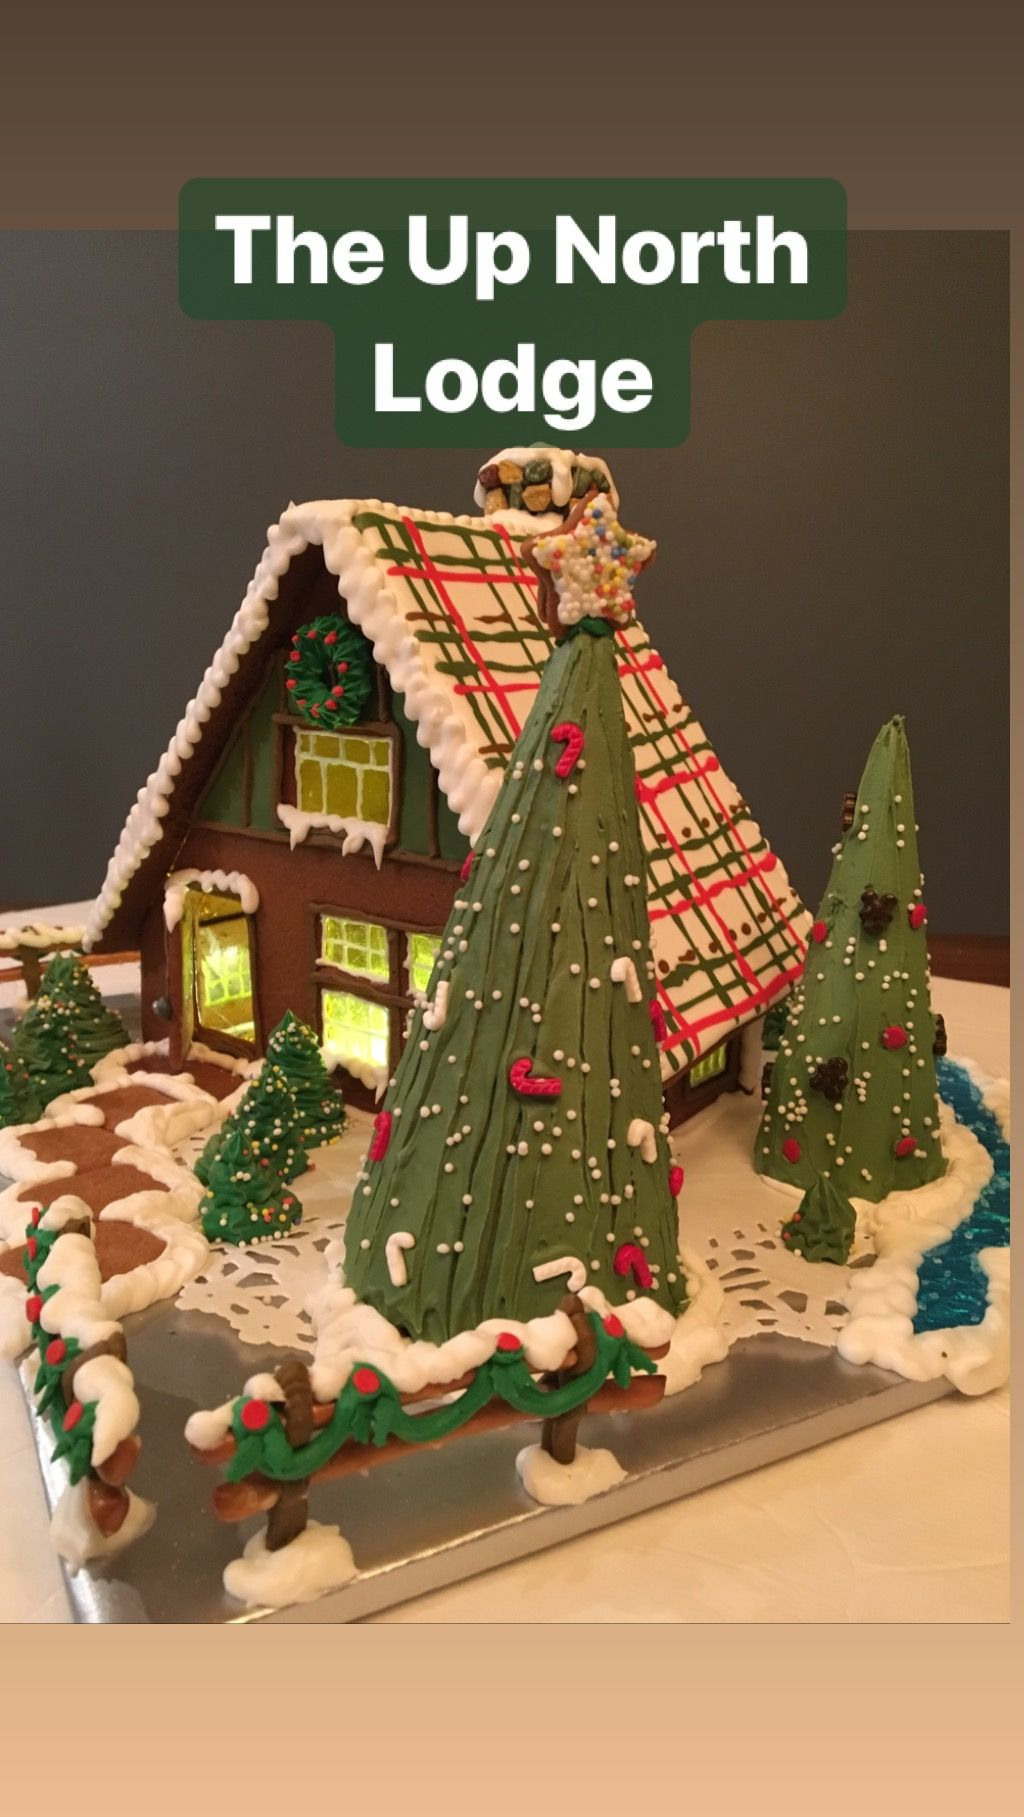 The Up North Lodge Gingerbread House With Flooded Royal Icing Roof With Plaid Desig Christmas Gingerbread House Gingerbread House Royal Icing Gingerbread House